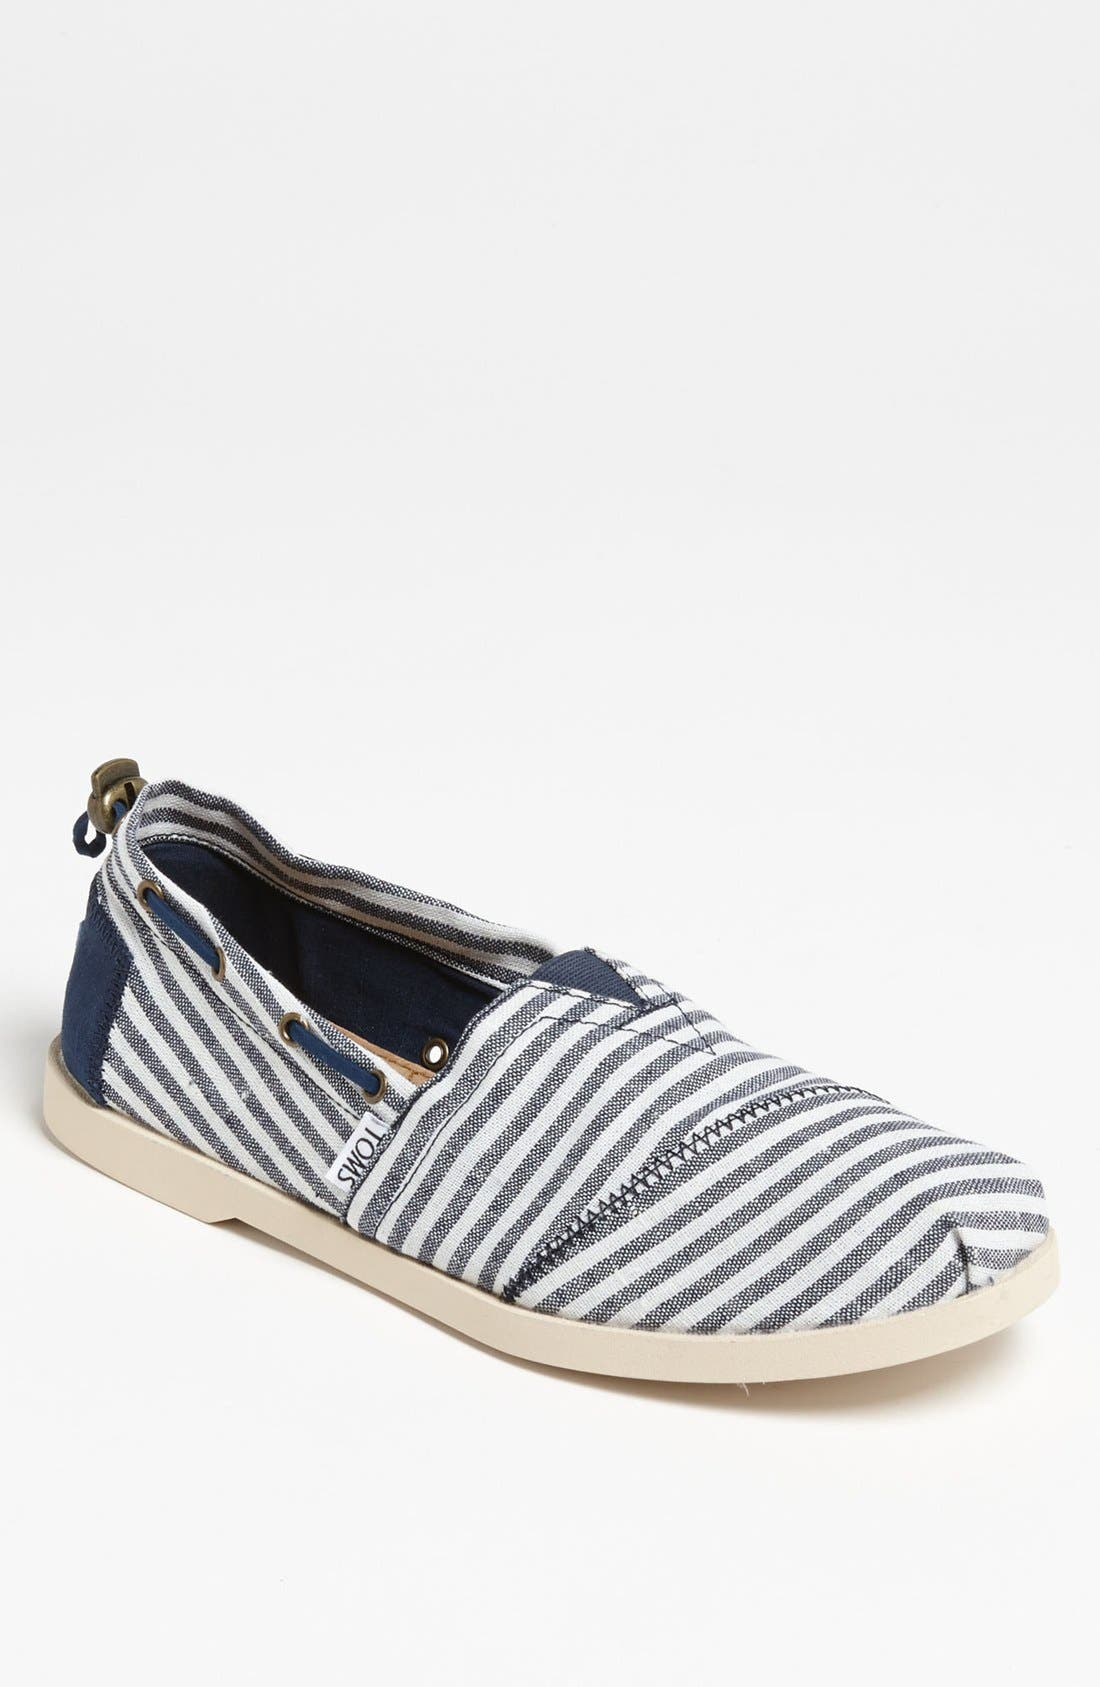 Alternate Image 1 Selected - TOMS 'Bimini - Nautical' Boat Shoe (Men)